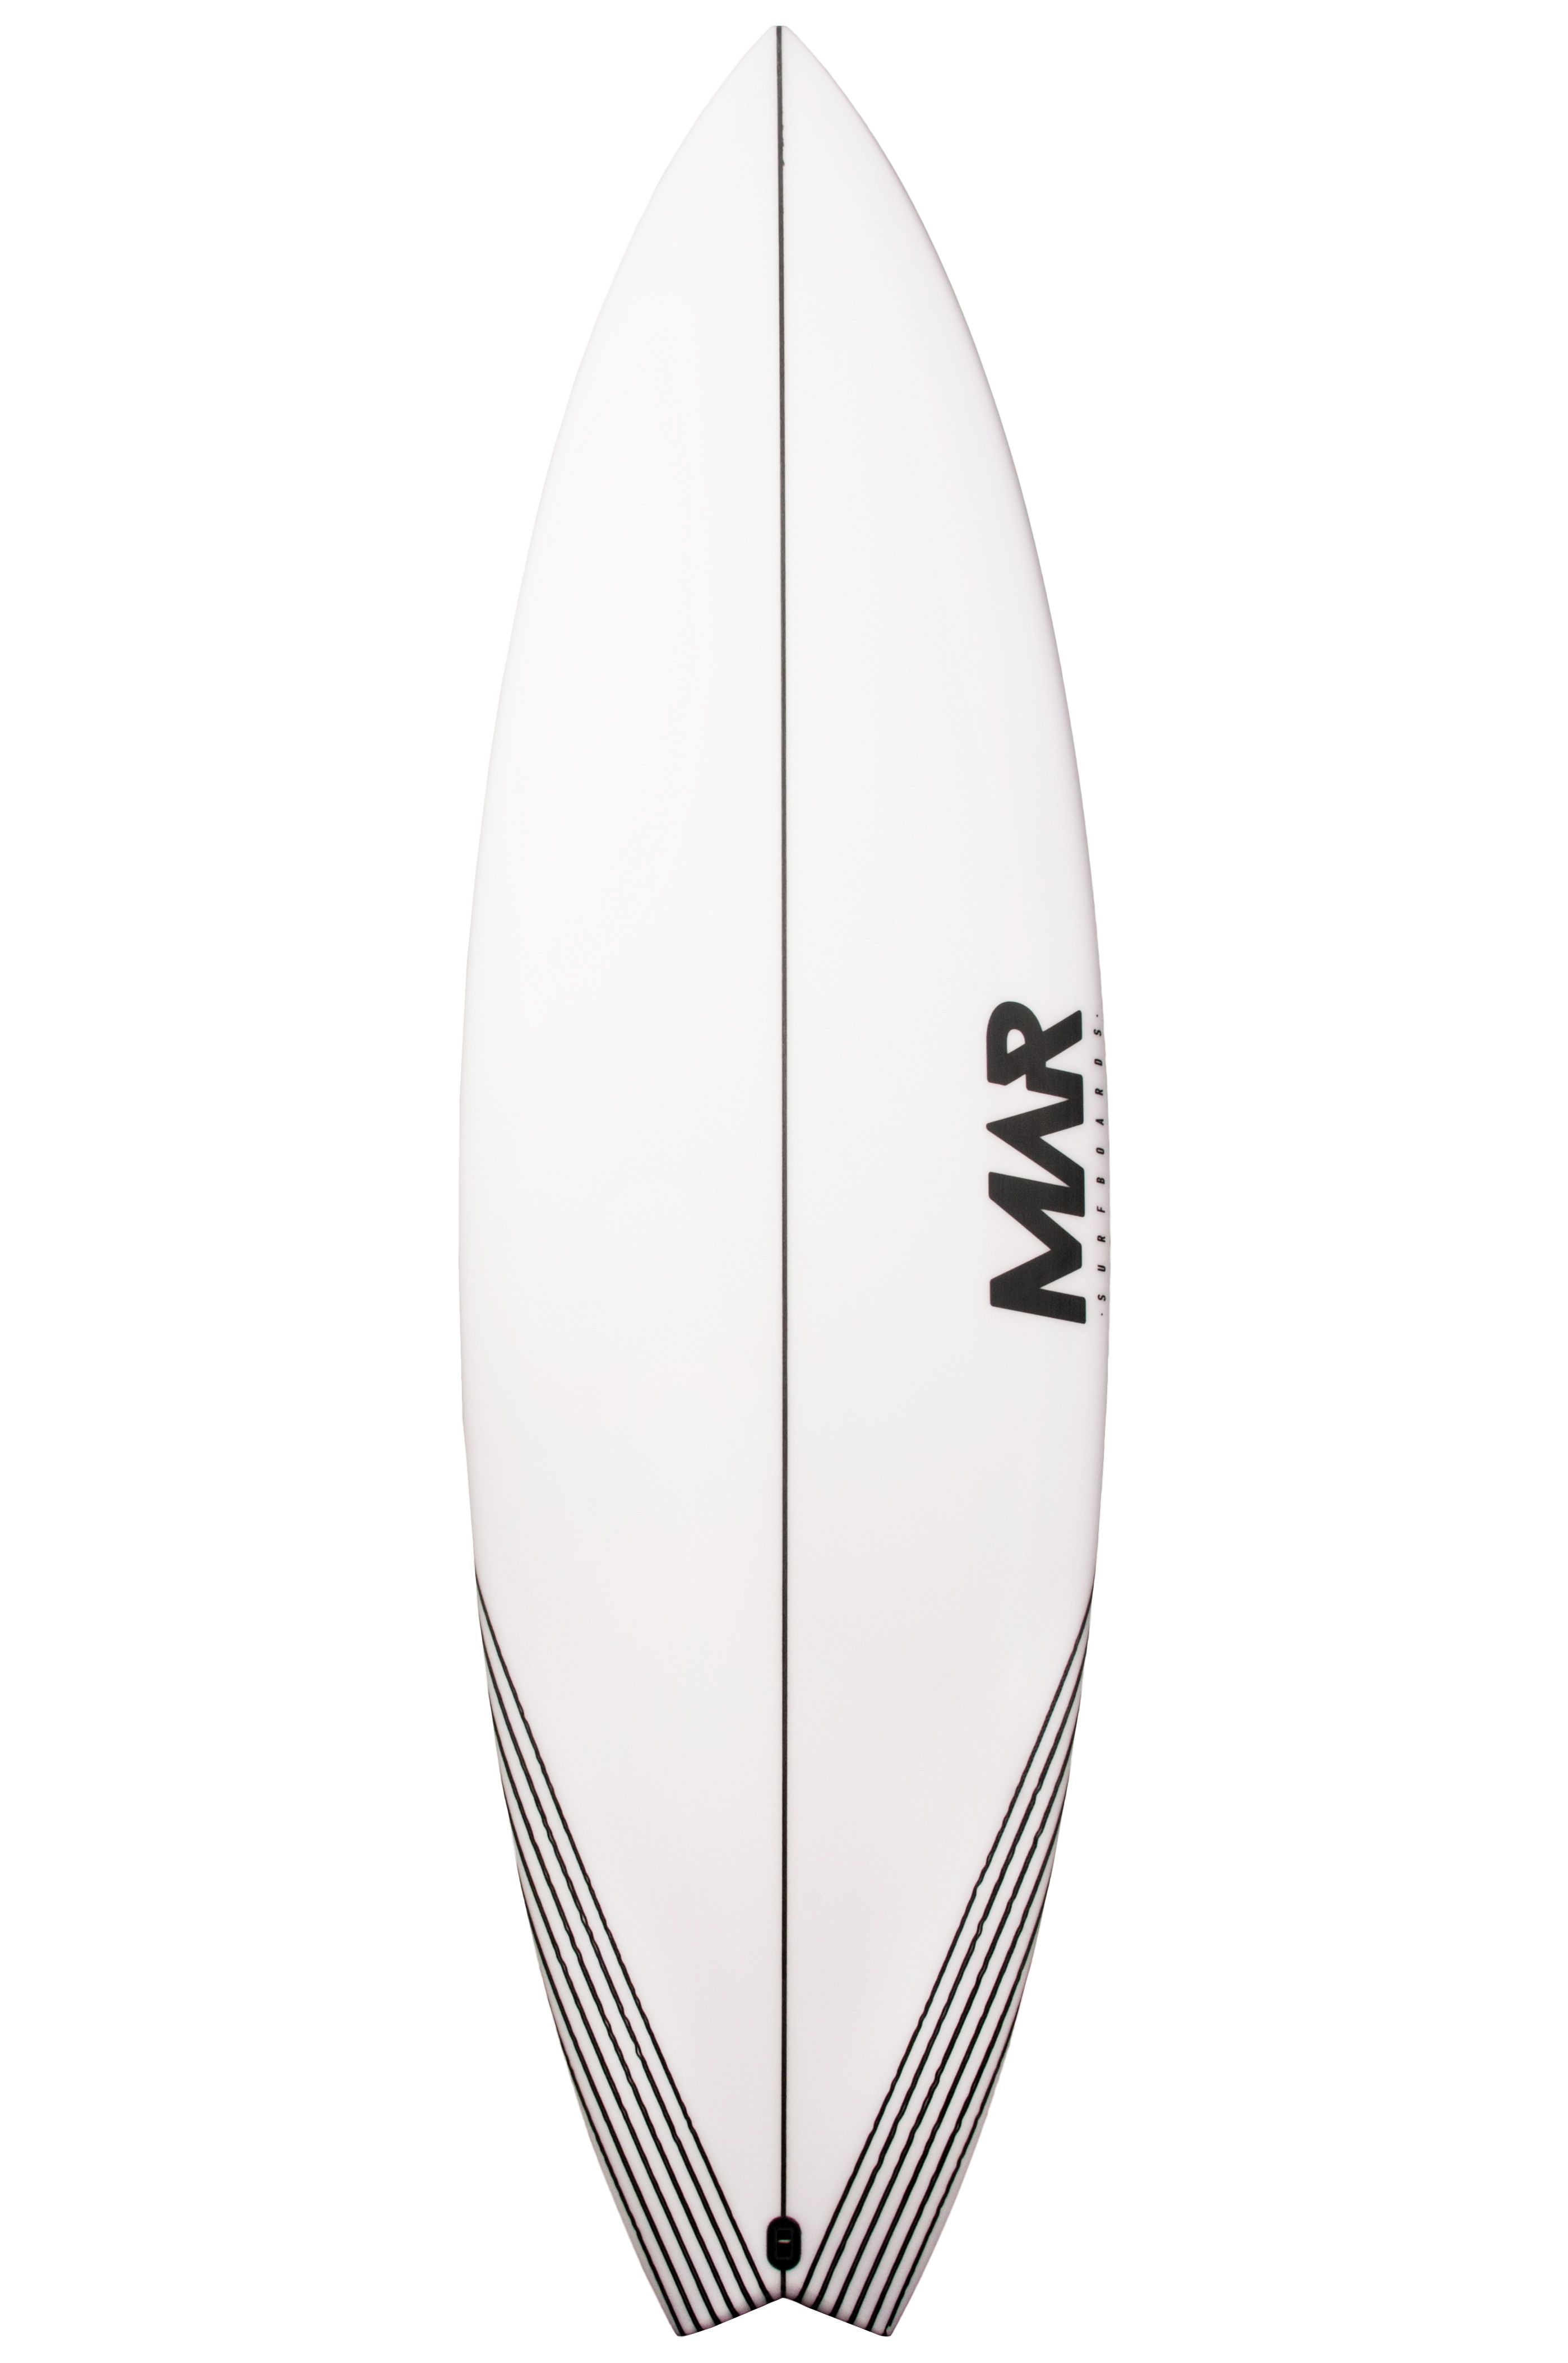 Prancha Surf Mar 5'10 PARROT PU Swallow Tail - White FCS II 5ft10